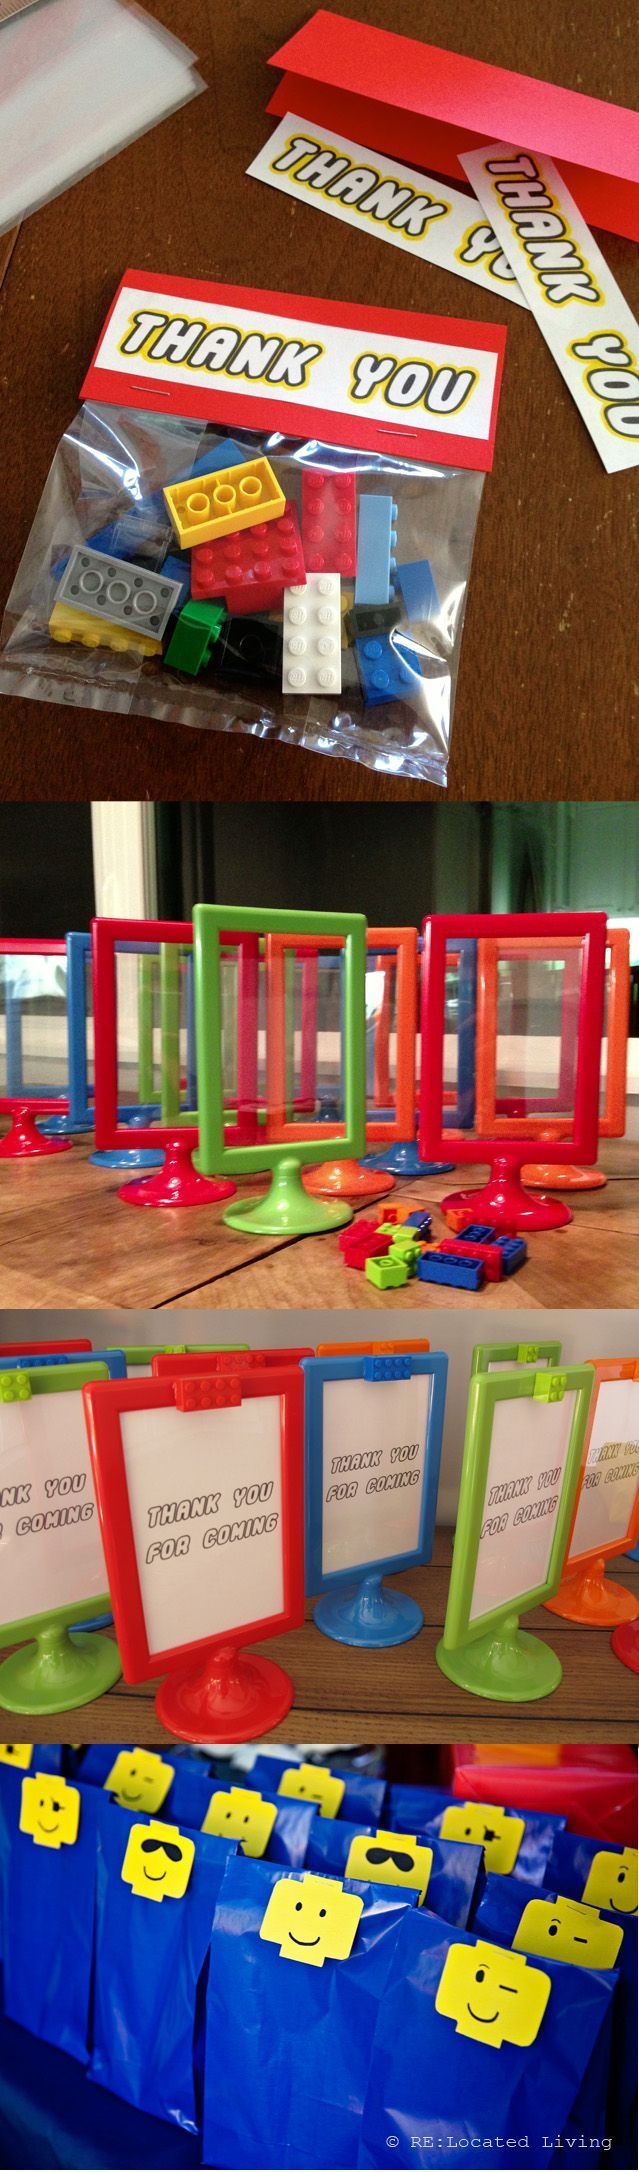 Must remember those ikea frames they would look great at the party then in the kids rooms after.: